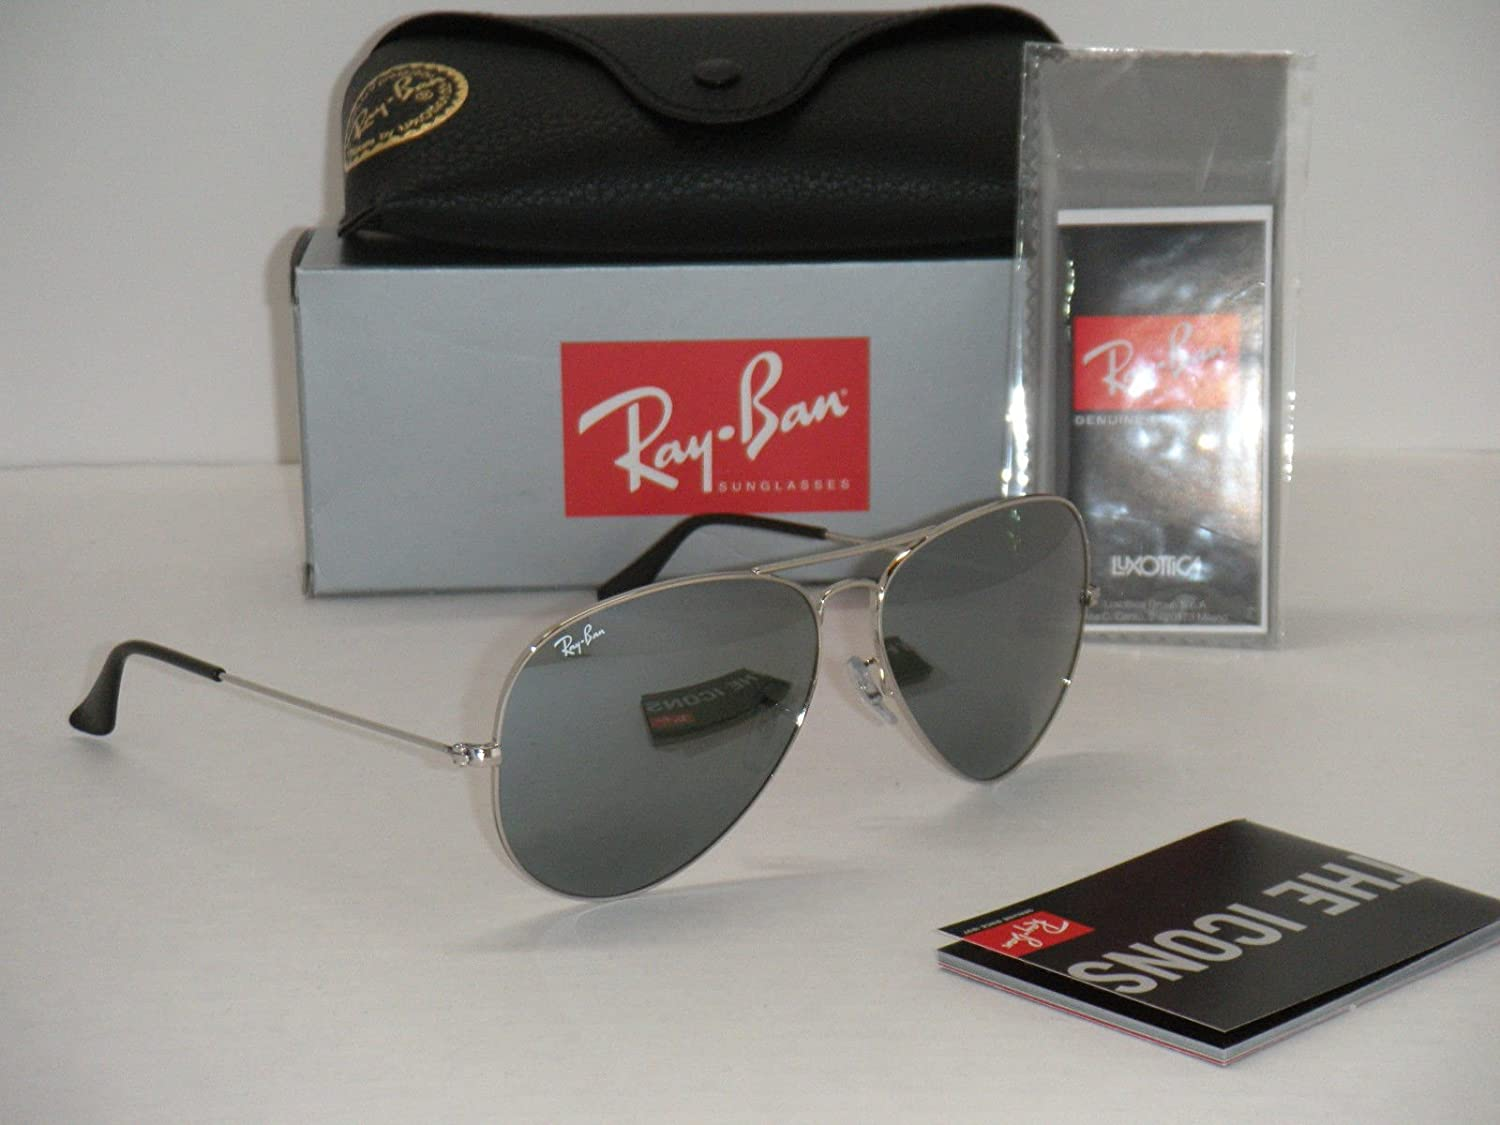 ray ban aviator silver mirror sunglasses  amazon: ray ban 3025 aviator rb 3025 003/40 62mm silver frame / full silver mirror large: shoes